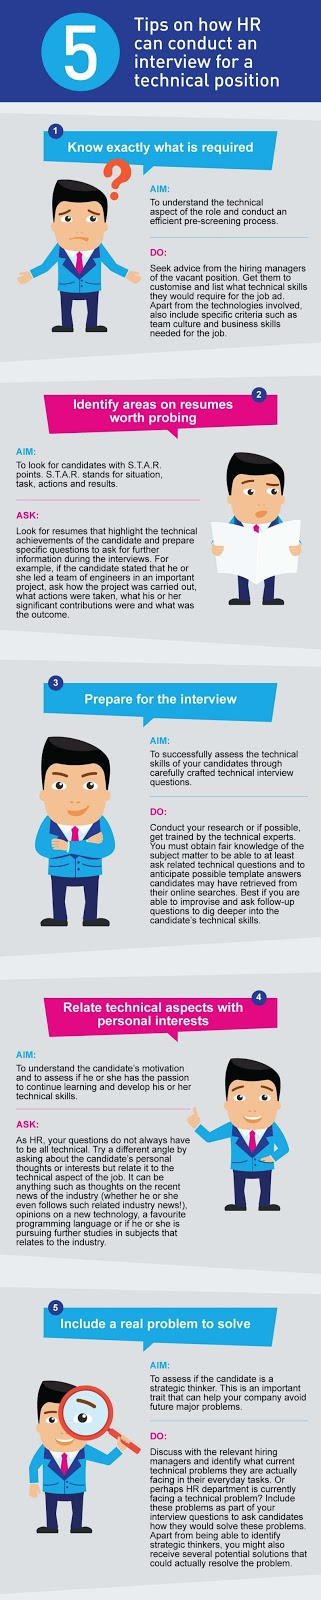 5 tips on how to interview for a technician's position job